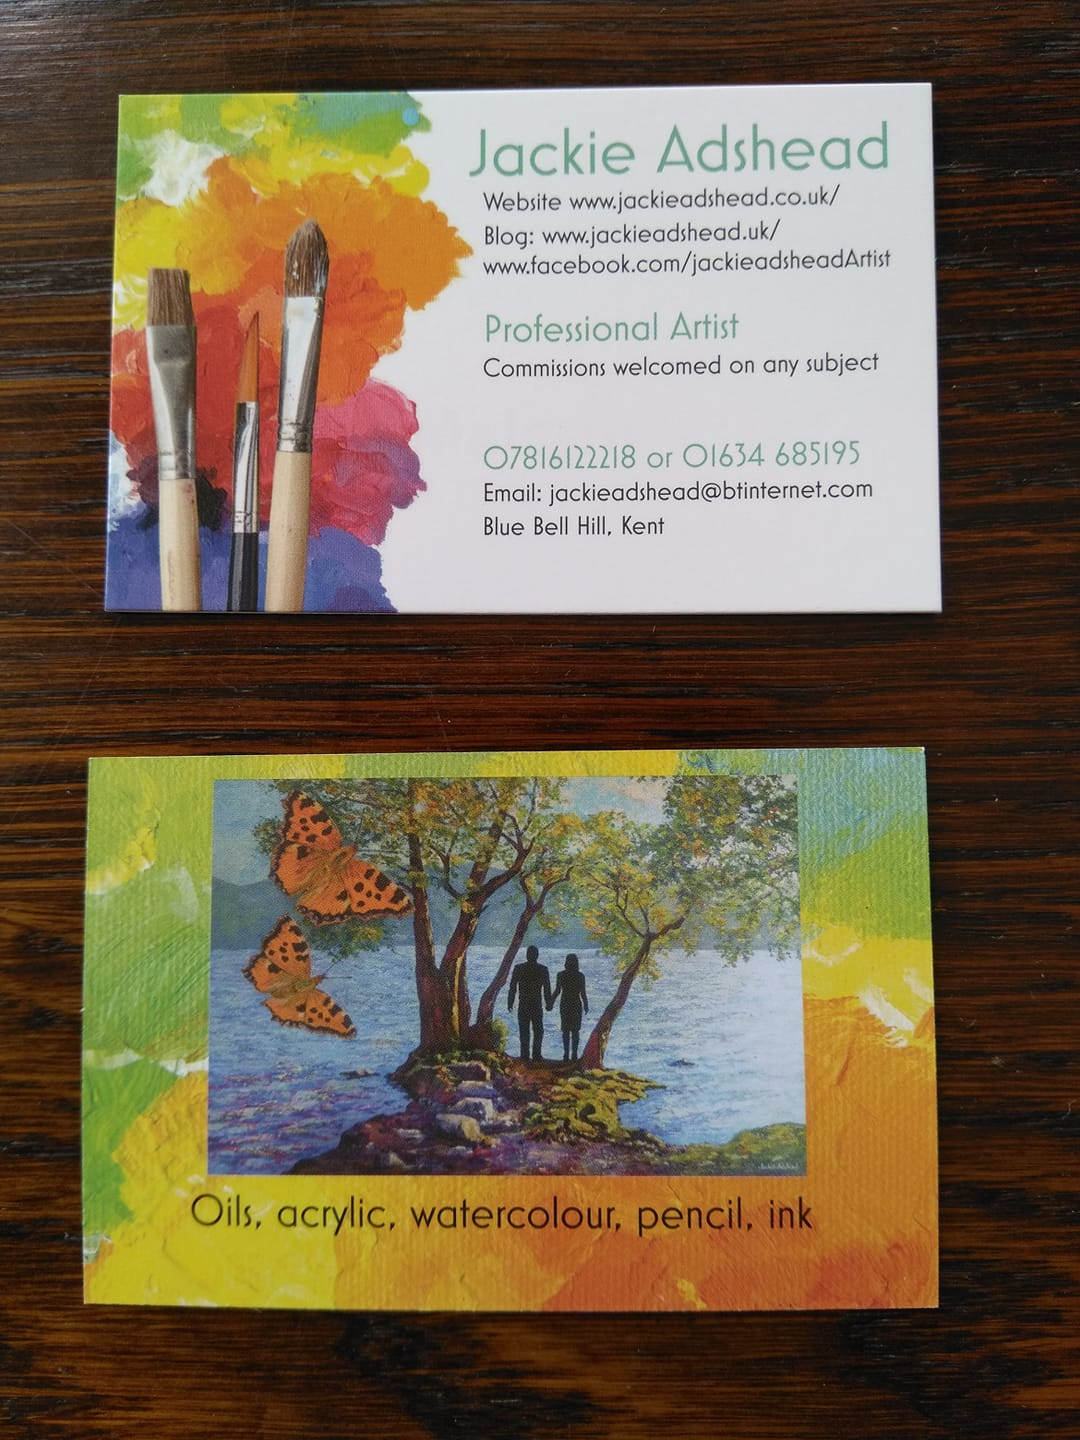 New business cards have arrived!